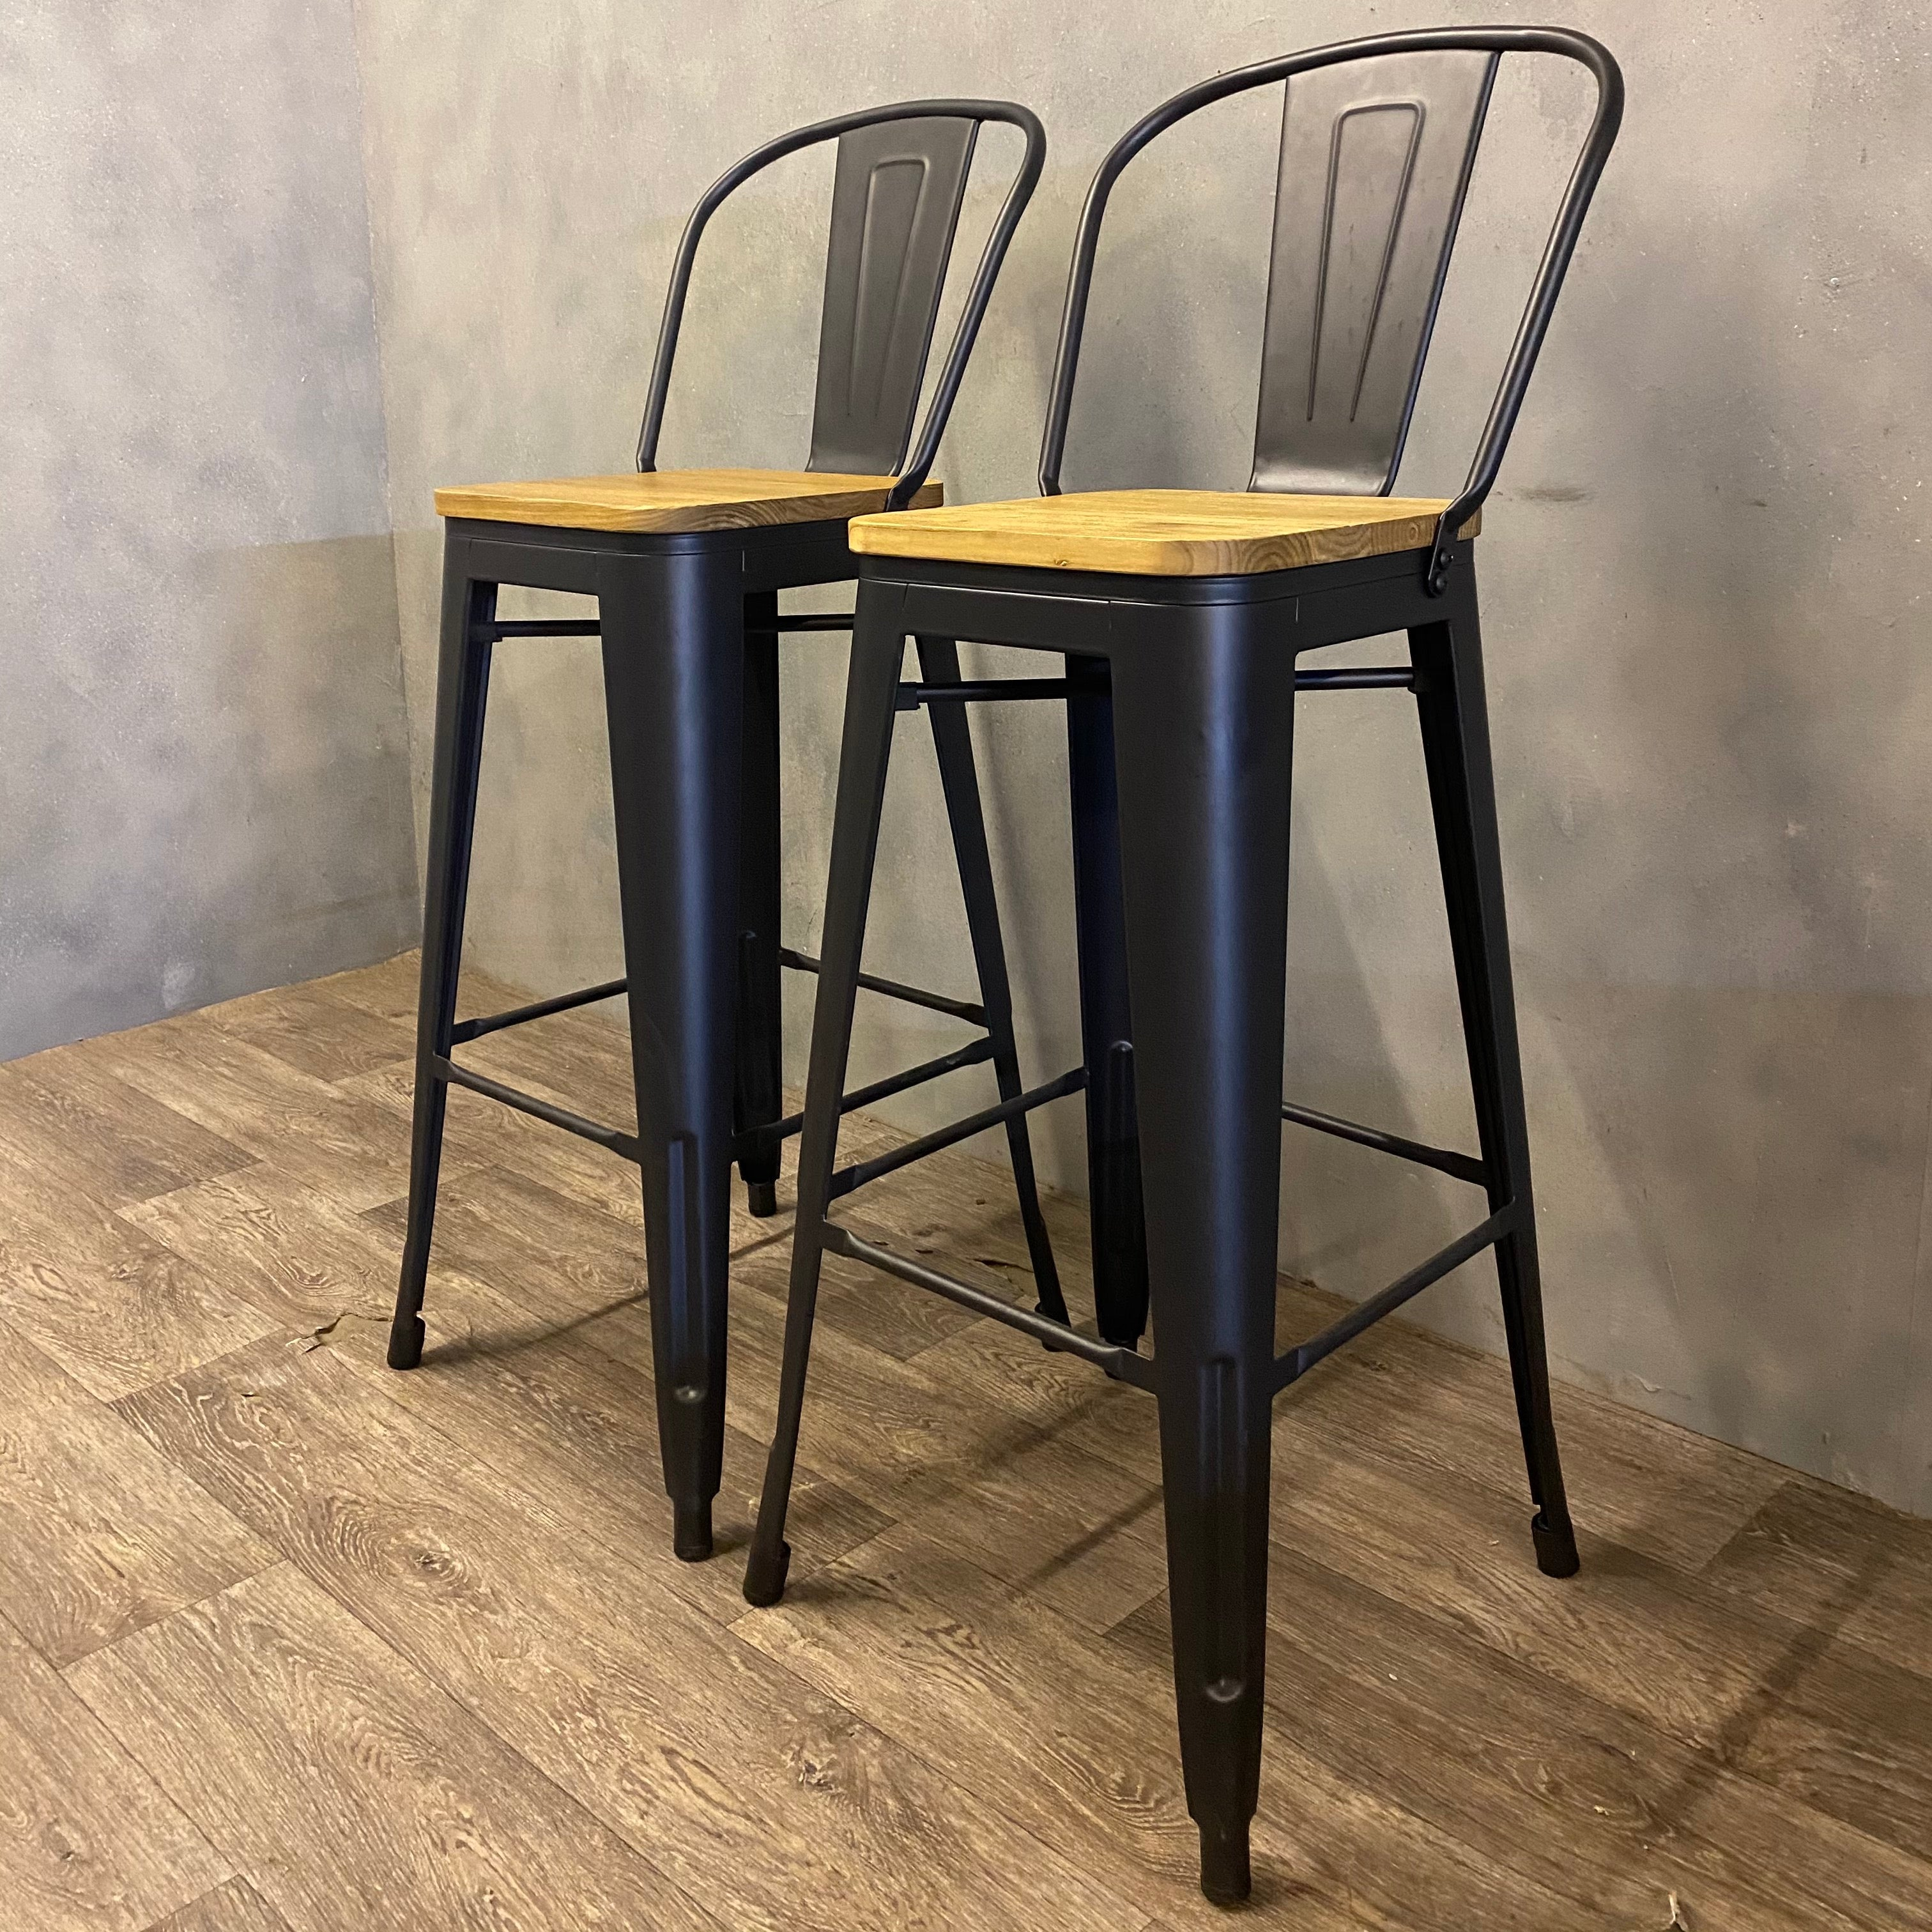 Industrial style kitchen stools